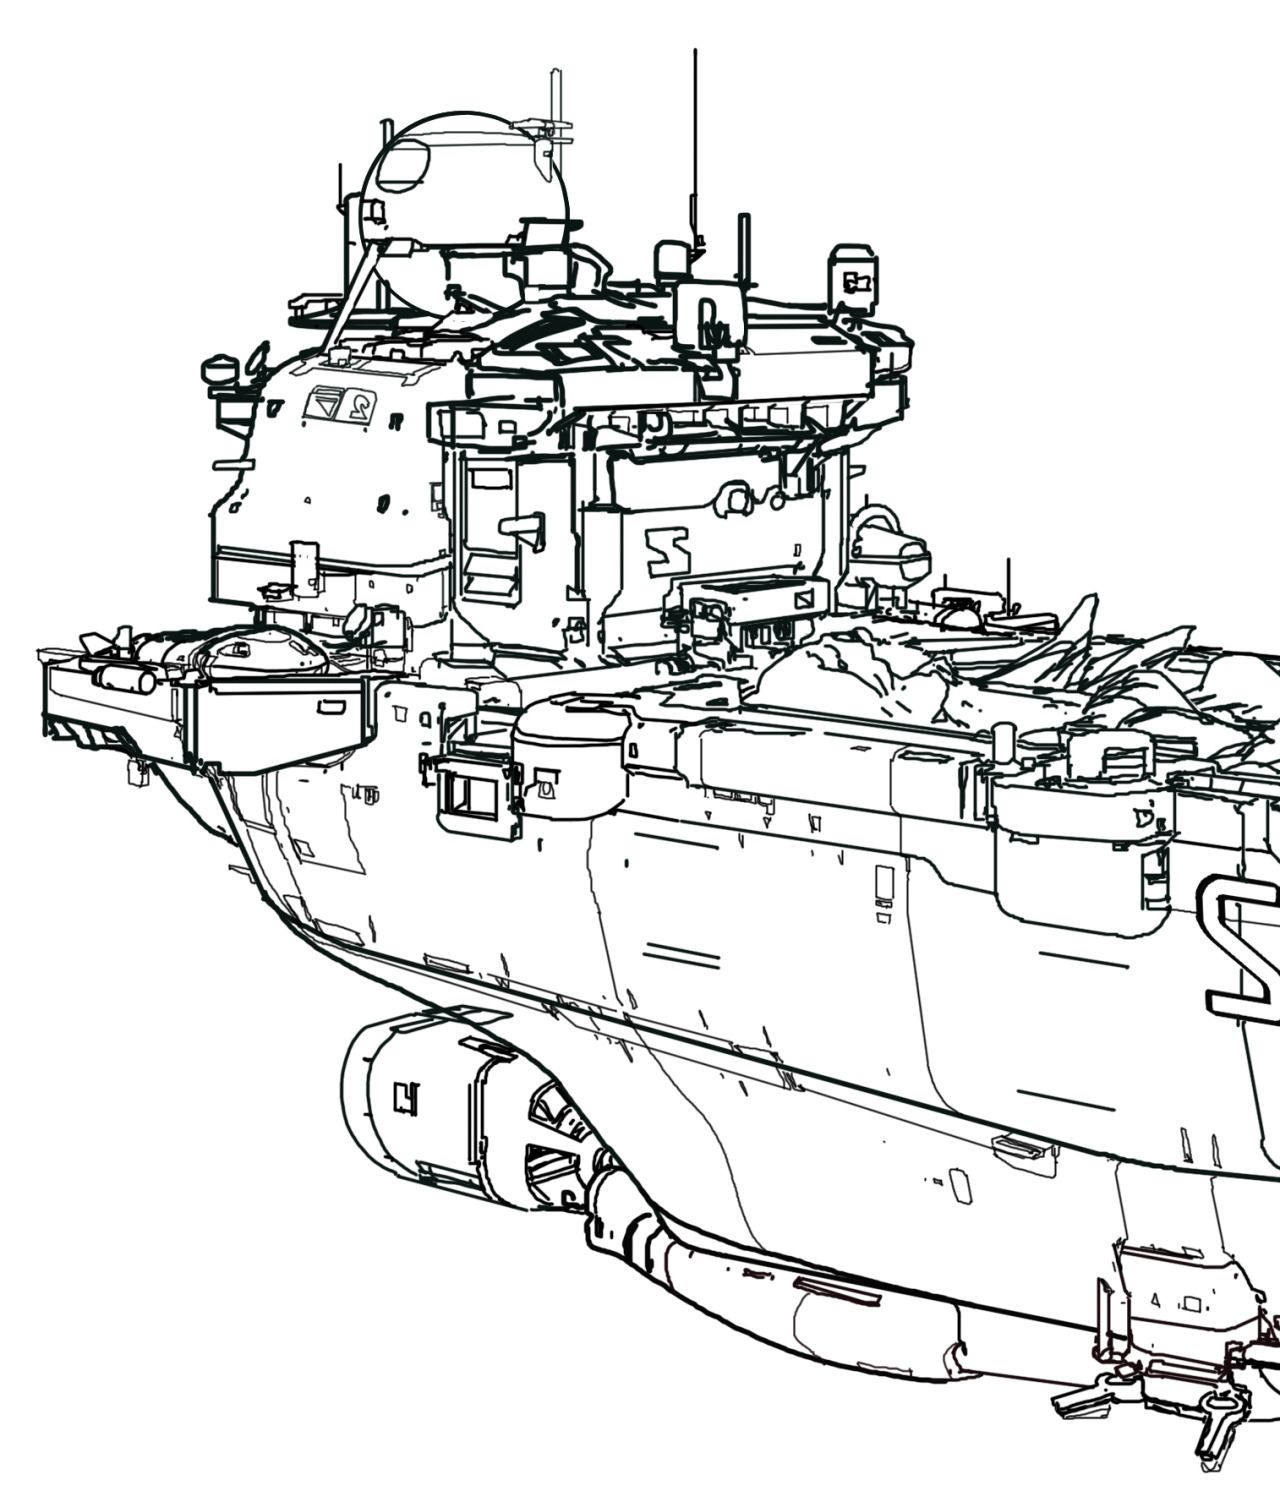 and a tanker thing